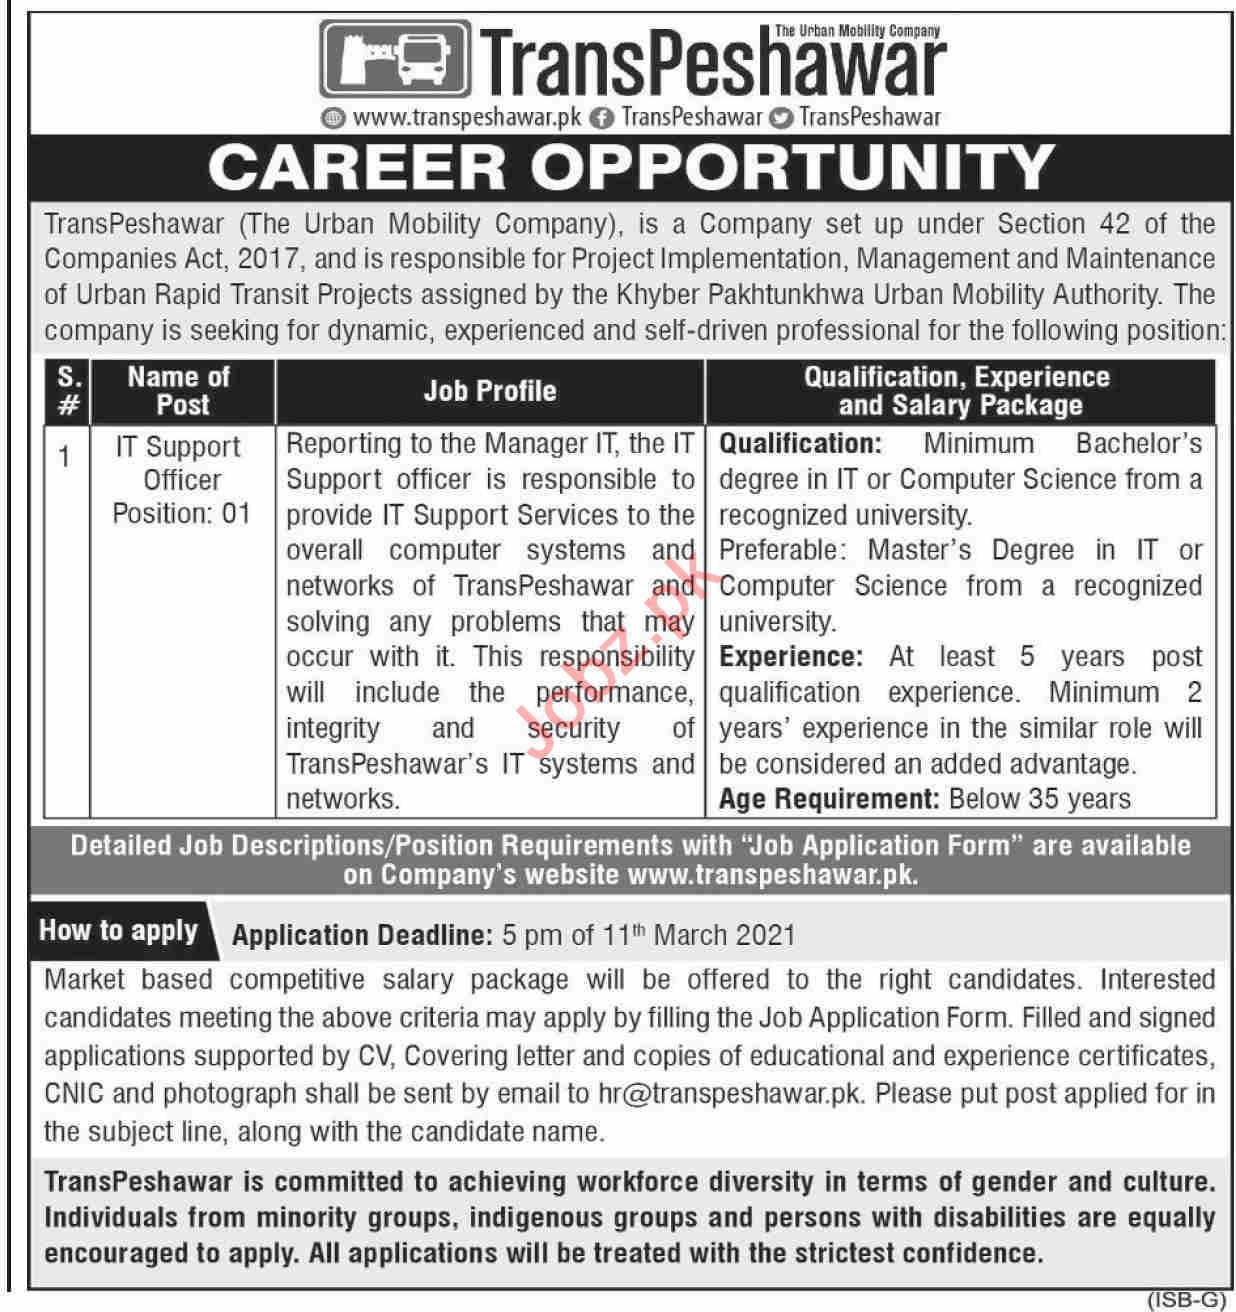 TransPeshawar Jobs 2021 for IT Support Officer